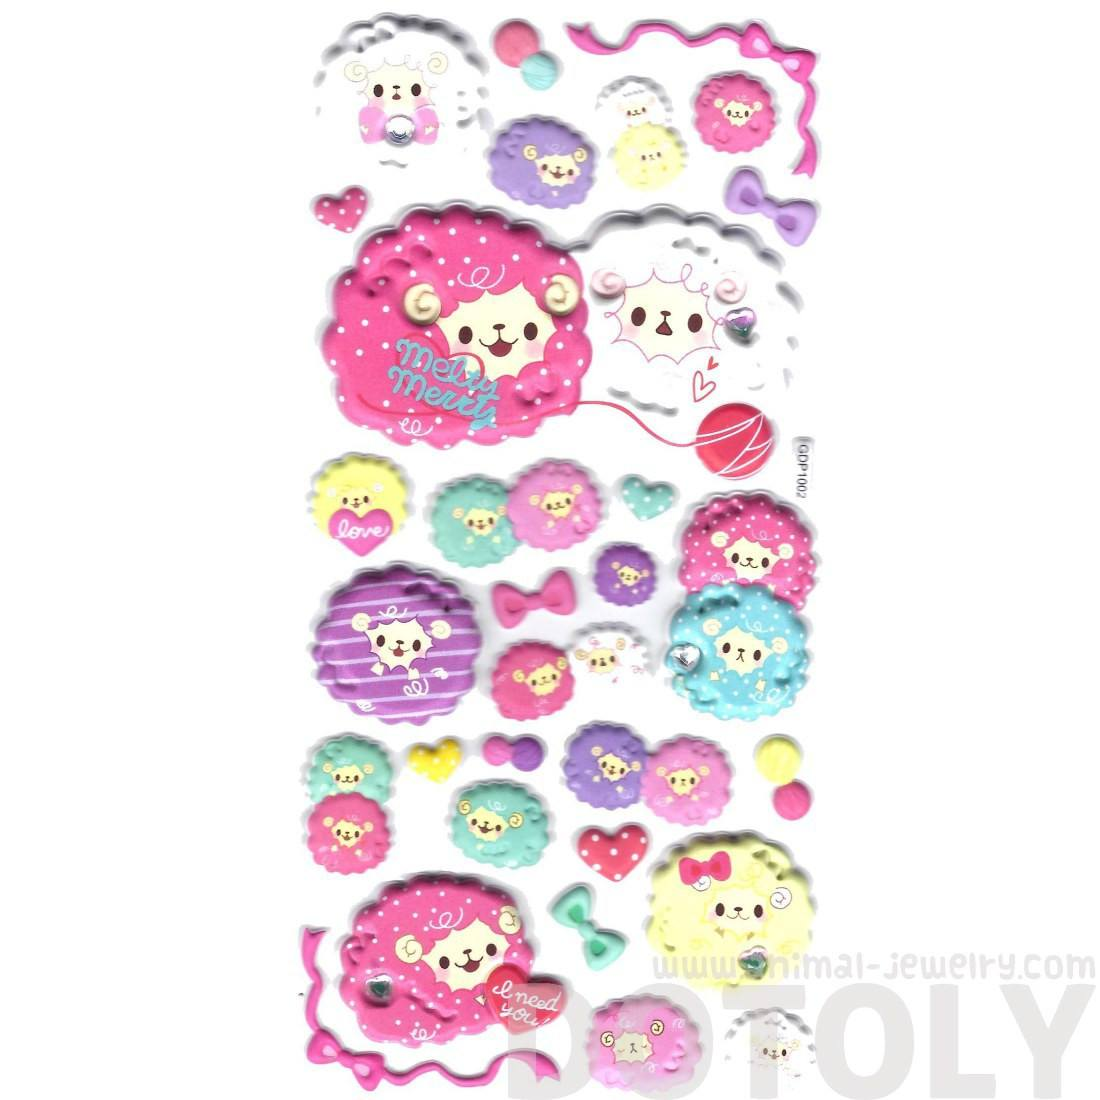 Super Puffy Girly Llama Sheep Animal Shaped Stickers for Scrapbooking